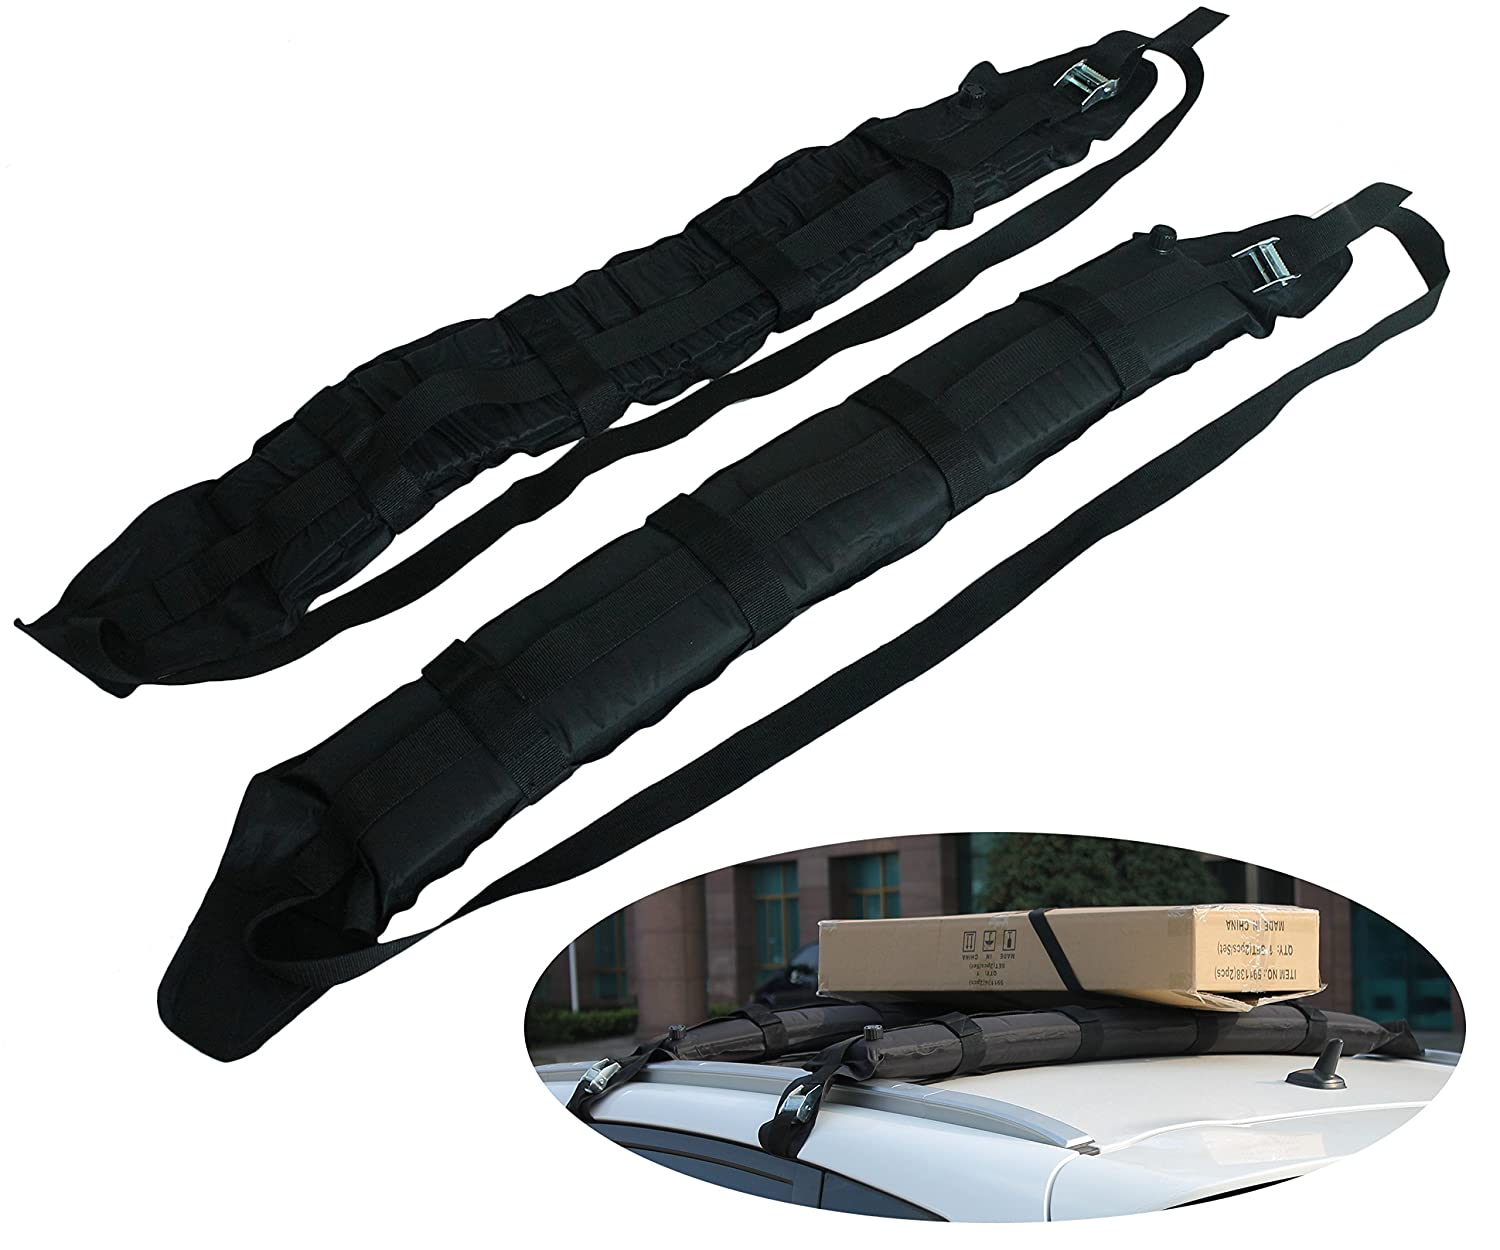 Ski Rack Kayak Paddleboard Canoe Ladder Luggage Snowboard Self Inflatable Car Roof Rack